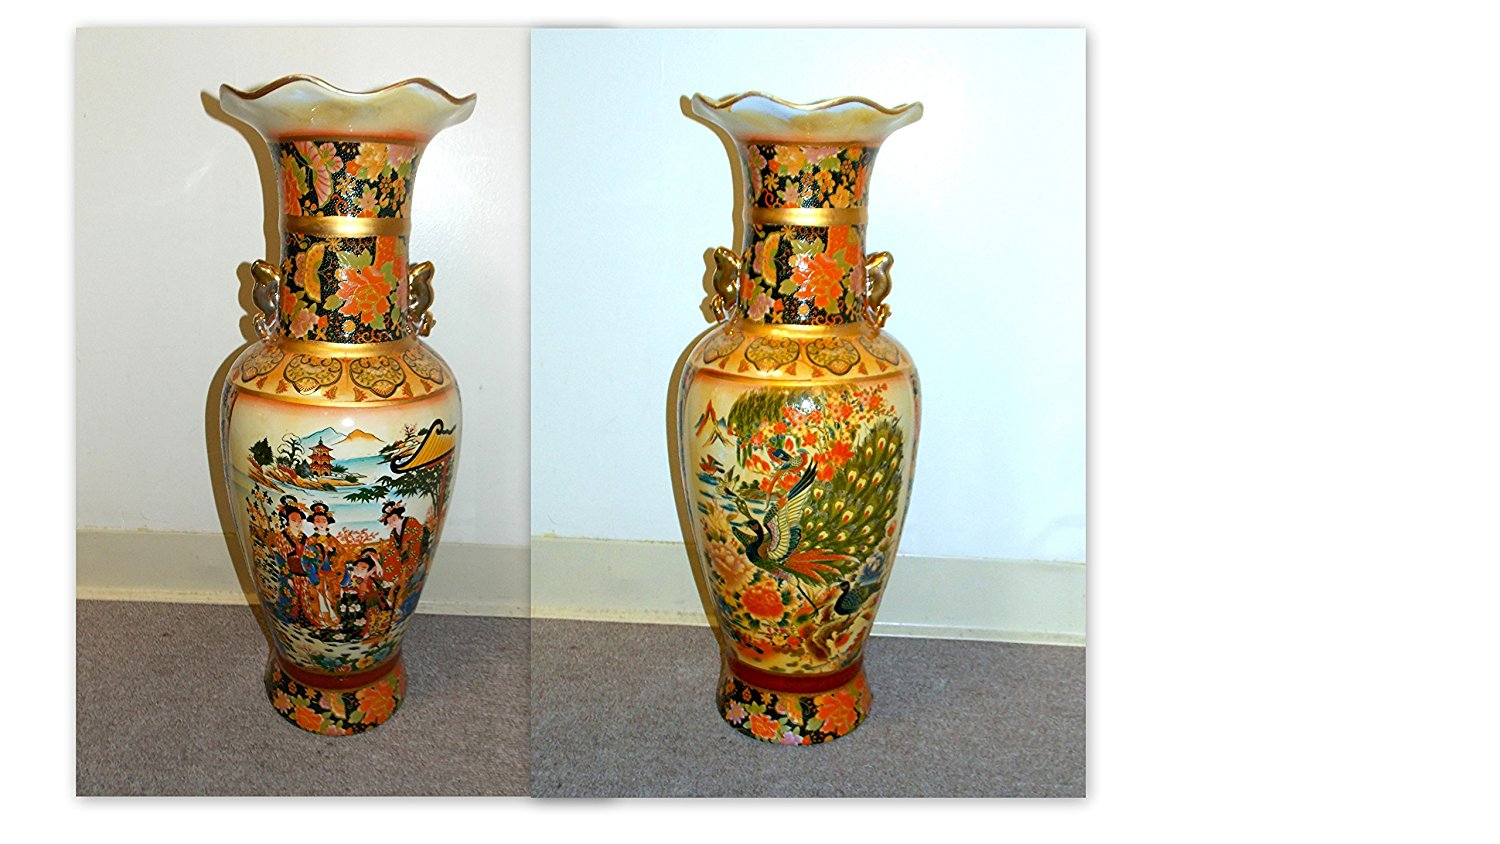 Cheap tall vase flowers find tall vase flowers deals on line at get quotations new 24 tall oriental asian double themed geisha scene and peacock bird with flowers scene reviewsmspy